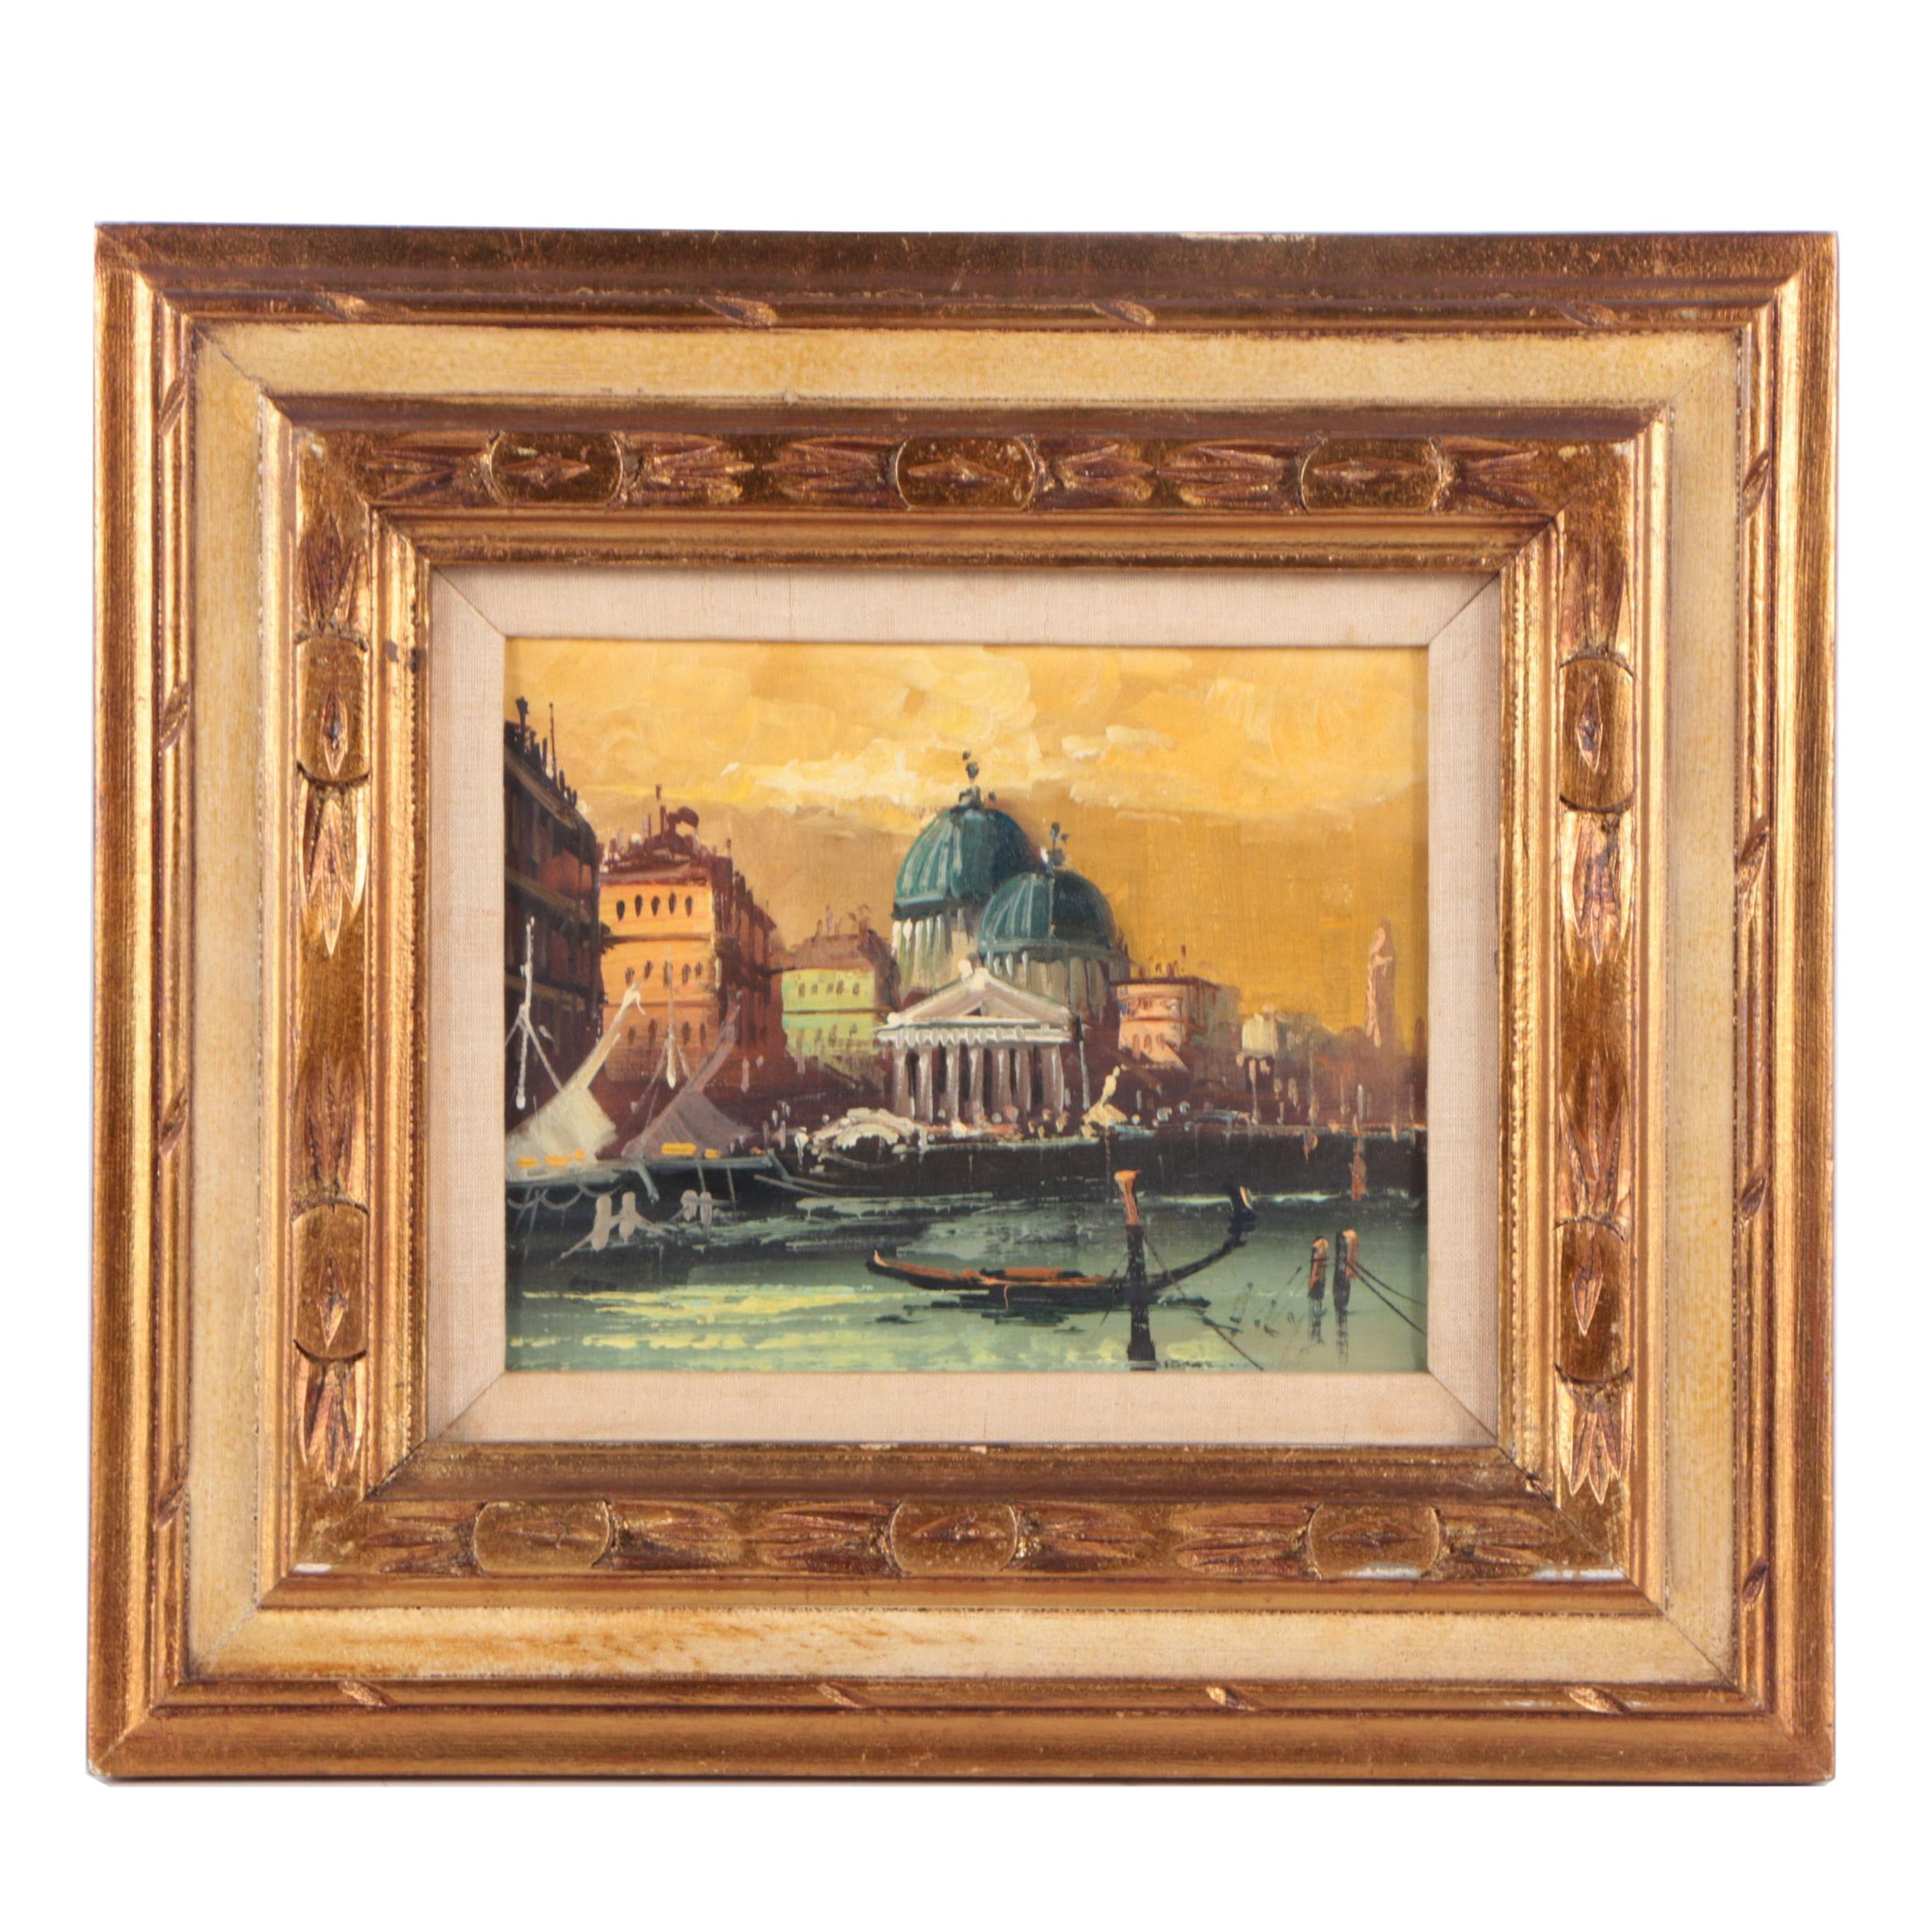 Oil Painting of a Venetian Canal